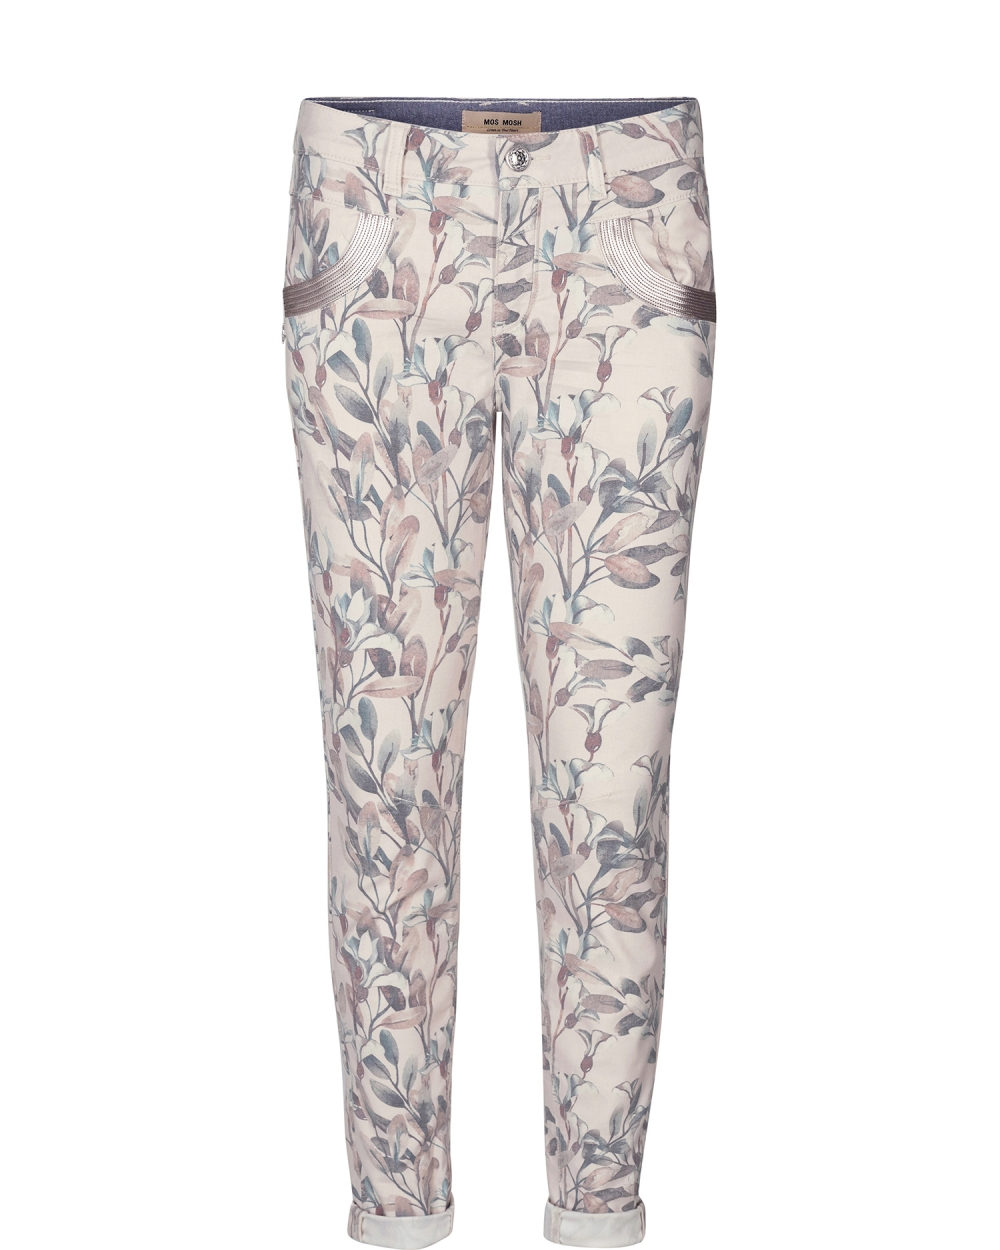 Mos Mosh Naomi Olive Pant - Blue Flower